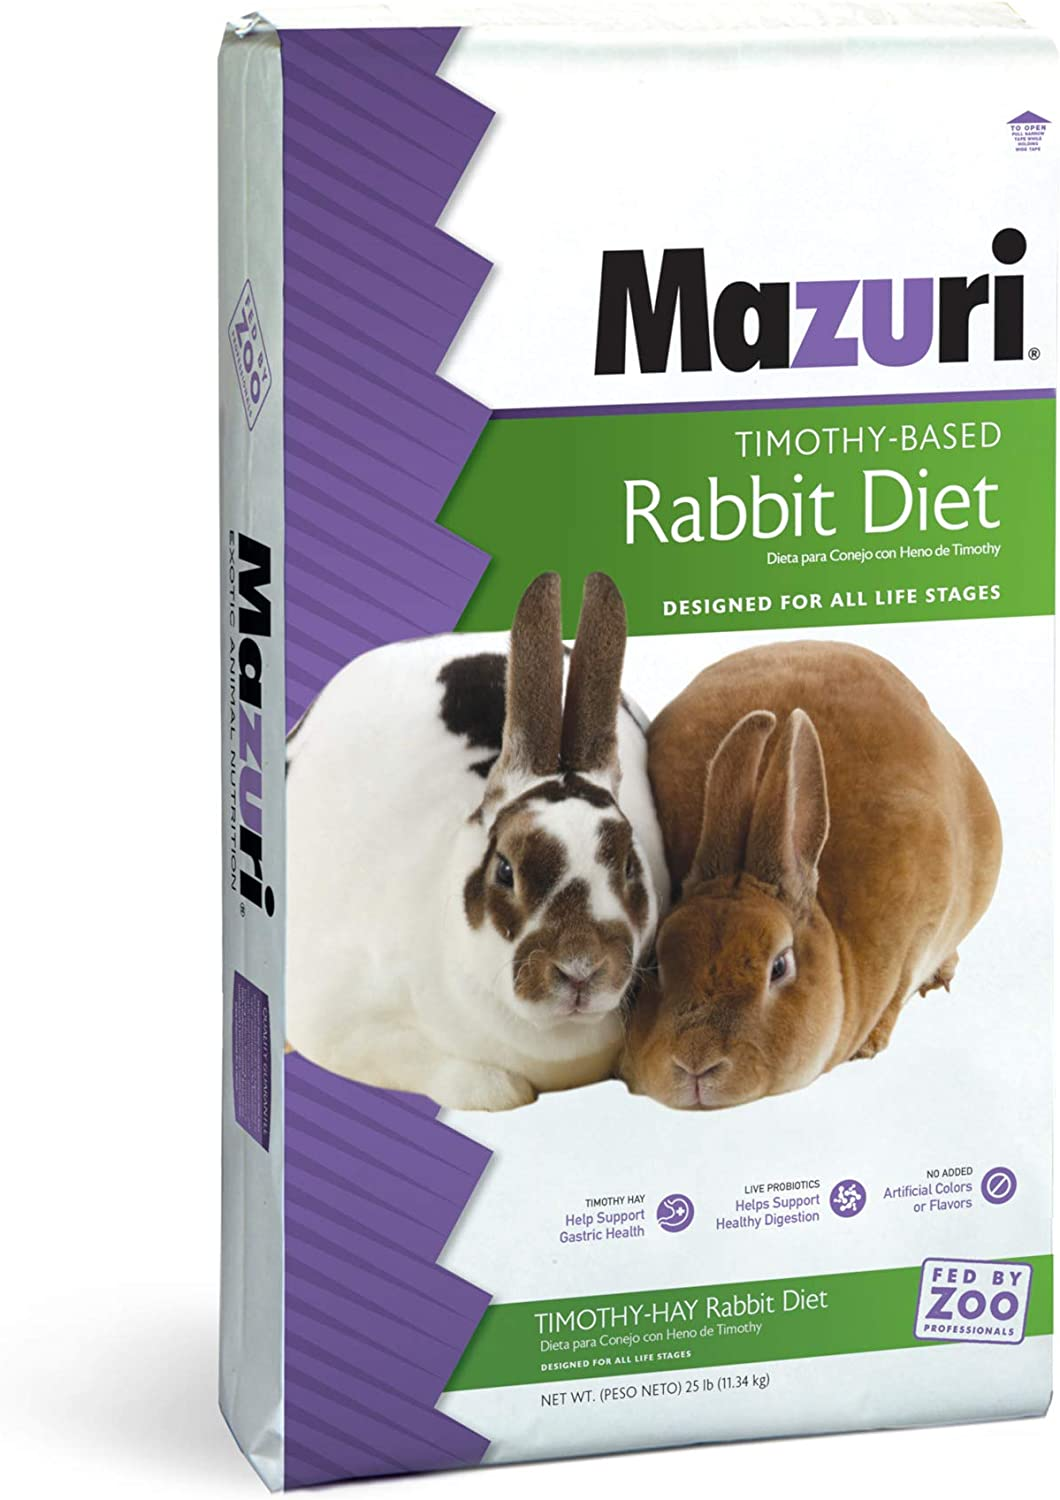 Mazuri | Nutritionally Complete Timothy Hay-Based Rabbit Food | 25 Pound (25 lb.) Bag